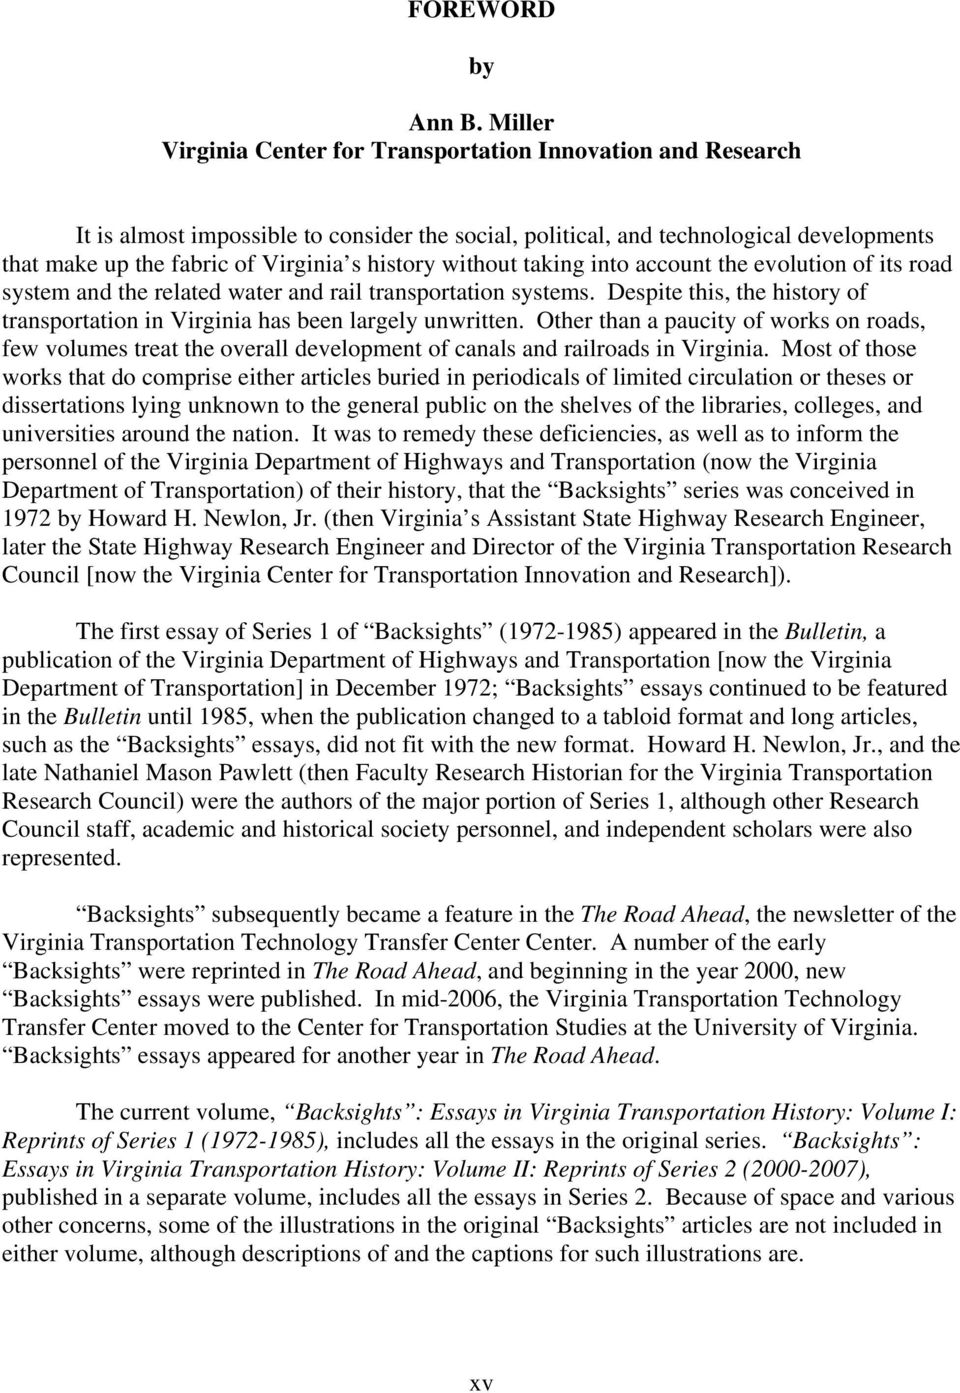 essays history virginia Open document below is an essay on virginia history from anti essays, your source for research papers, essays, and term paper examples.